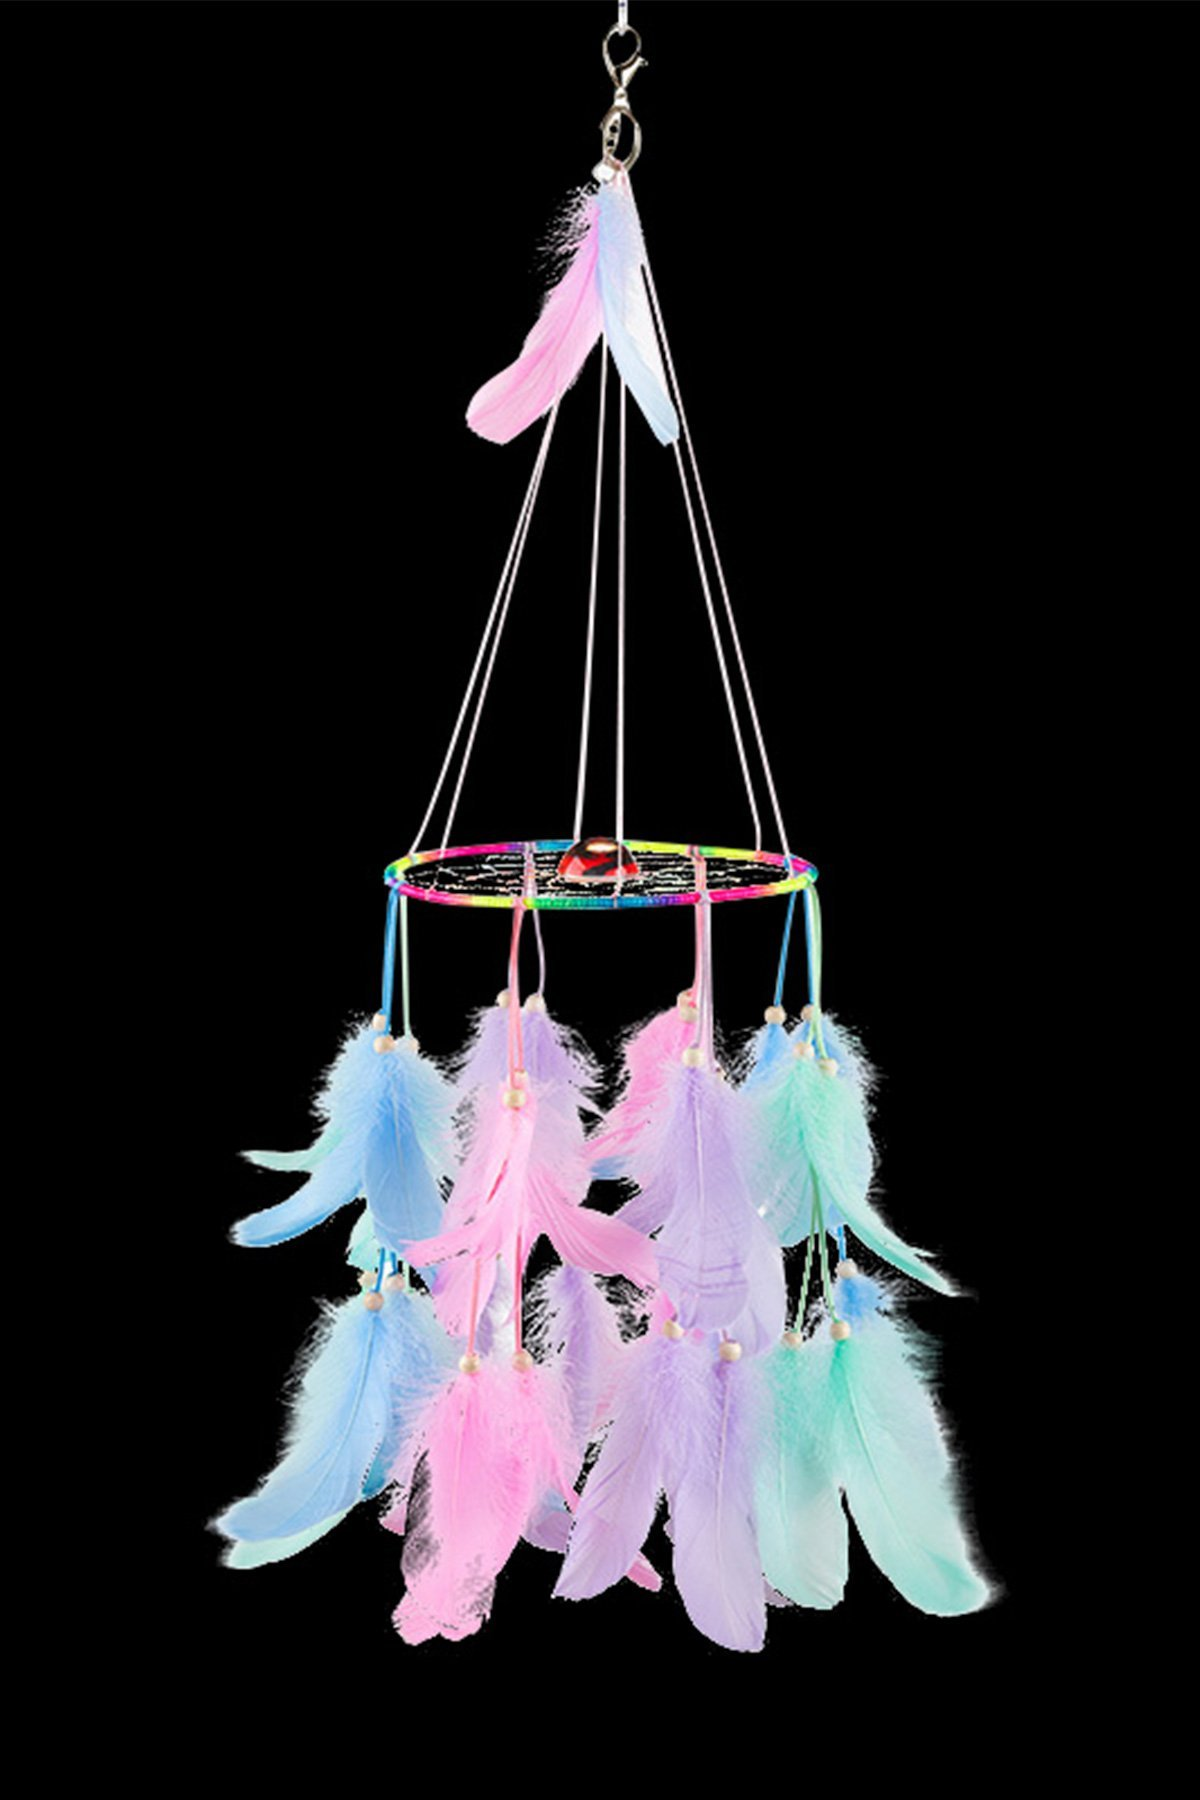 Jescrich Large Handmade Dream Catcher Traditional Dreamcatcher Feather Wall Hanging Ornaments Decoration Gift 39inch Long (Multicolor)